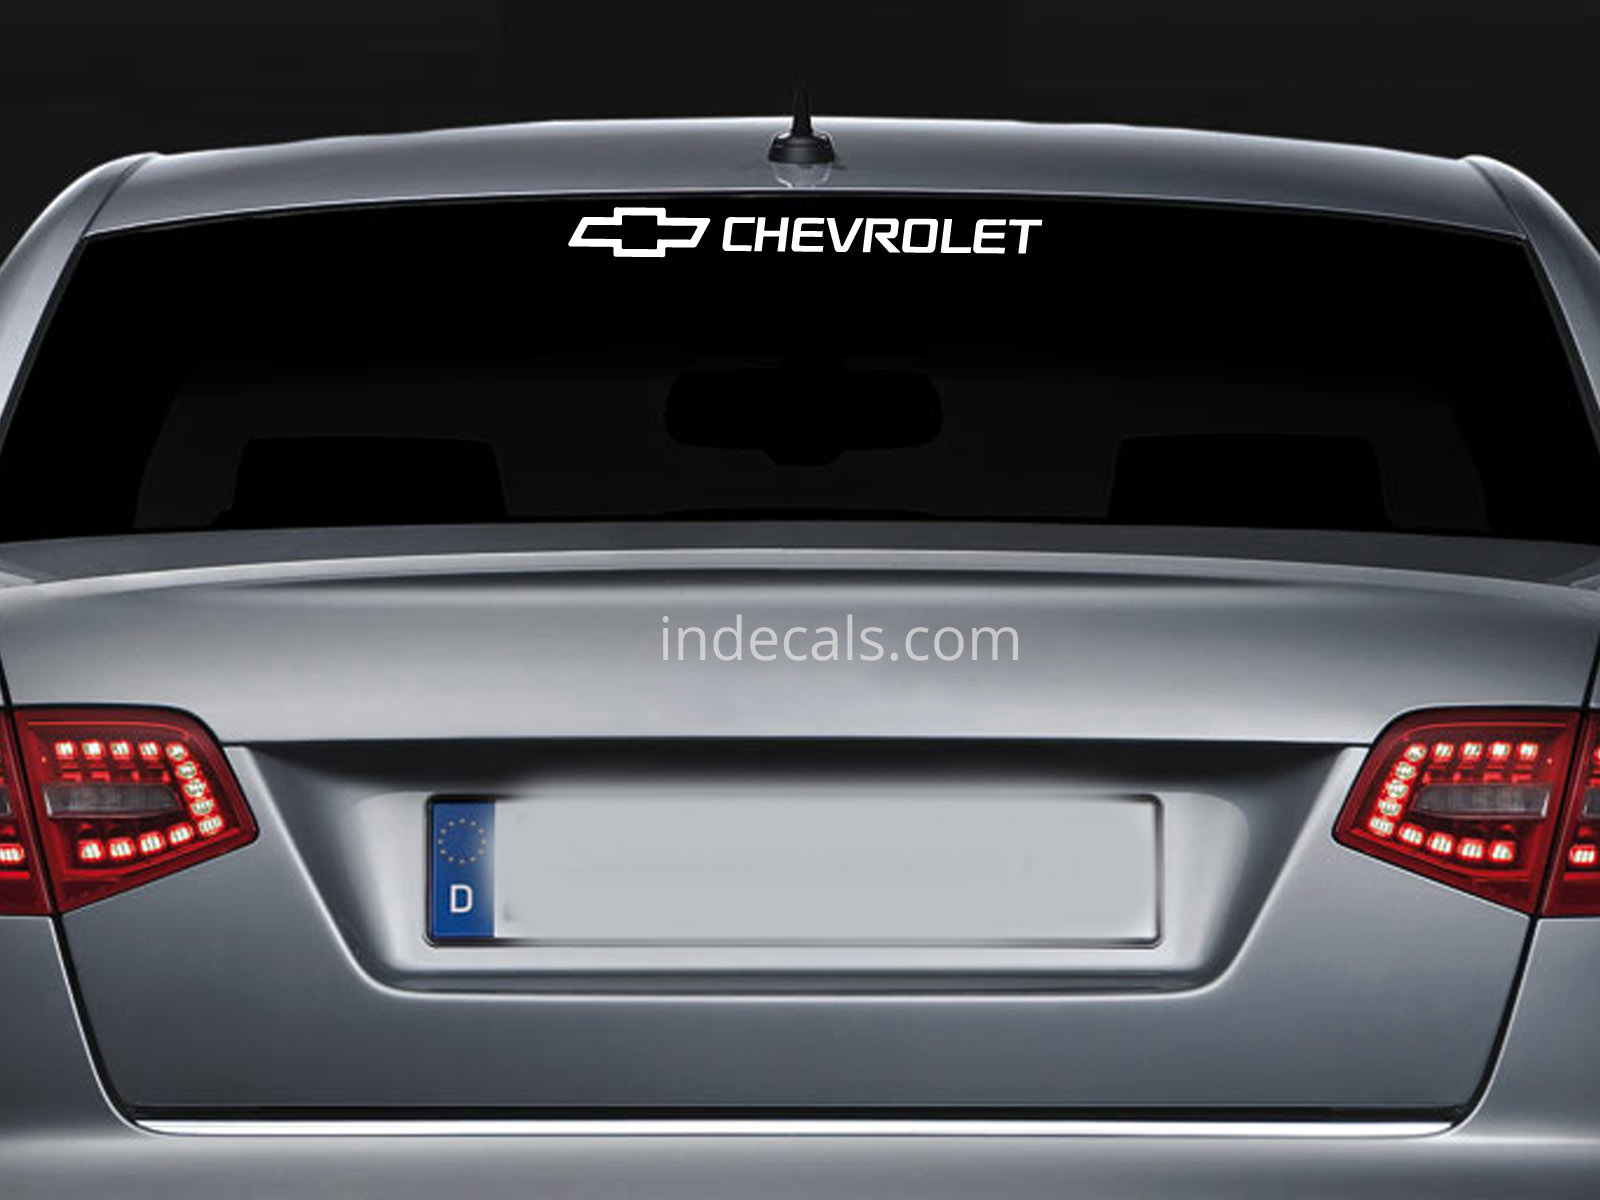 1 x Chevrolet Sticker for Windshield or Back Window - White